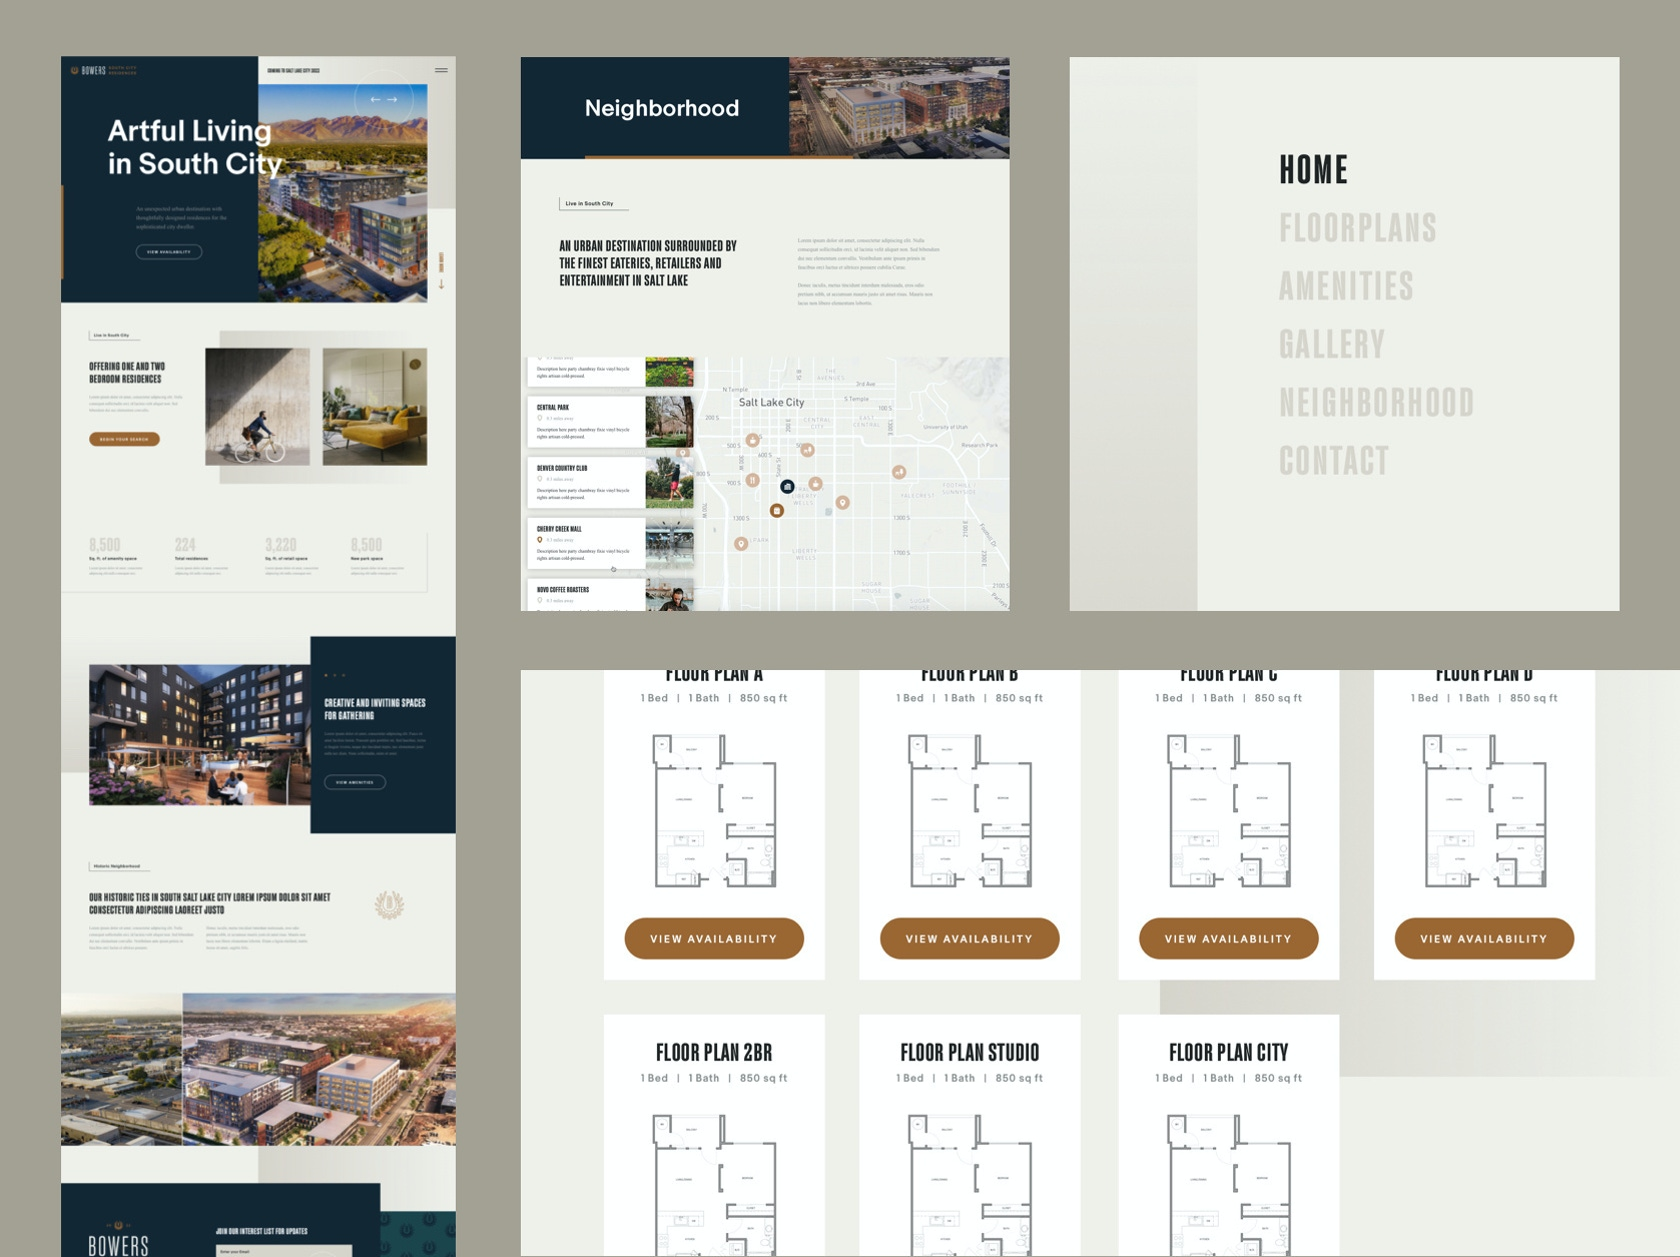 Bowers residences web assets